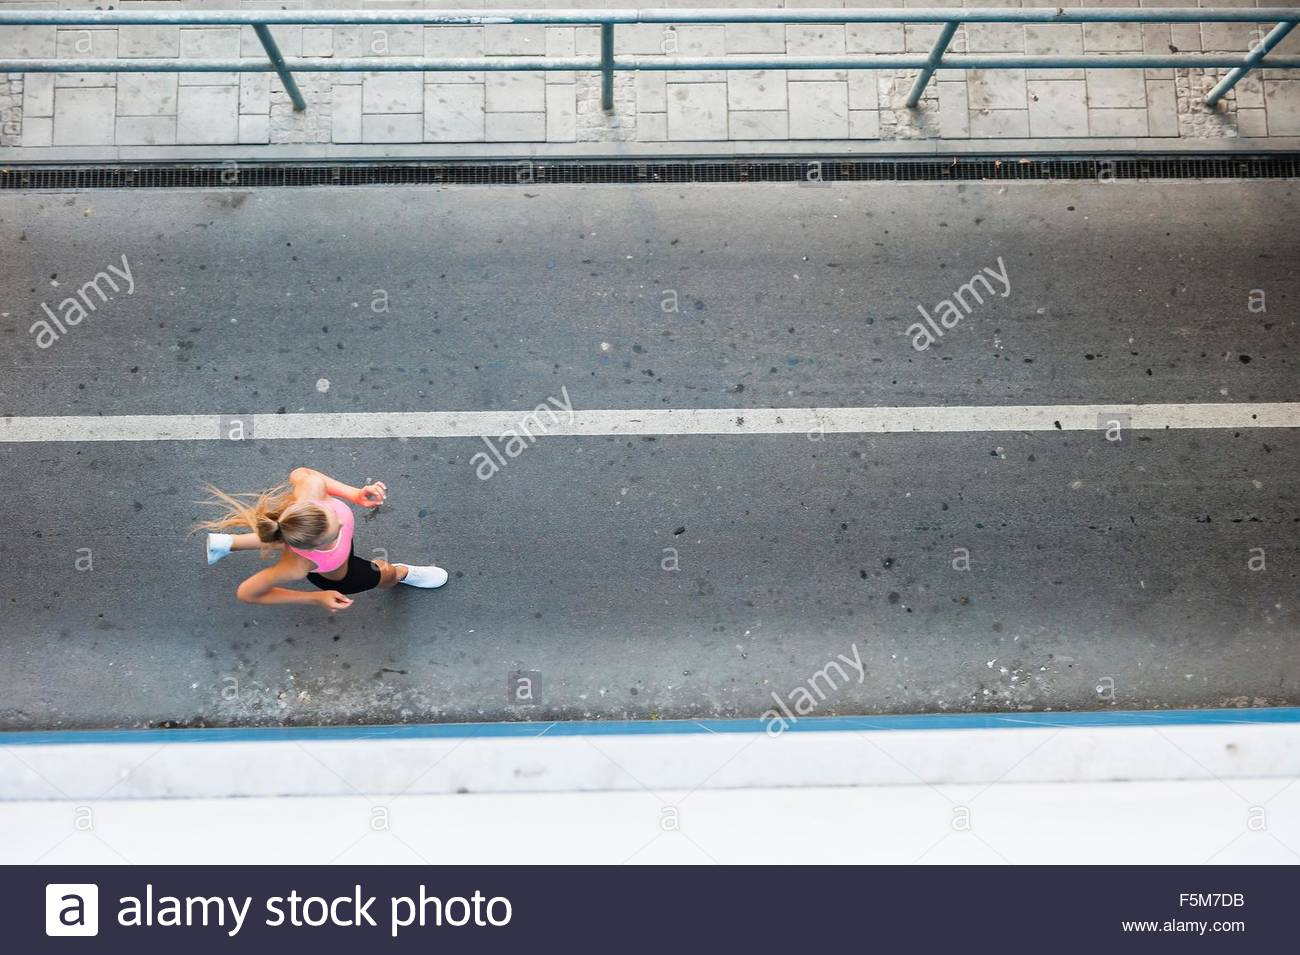 Overhead view of young female runner running along walkway - Stock Image